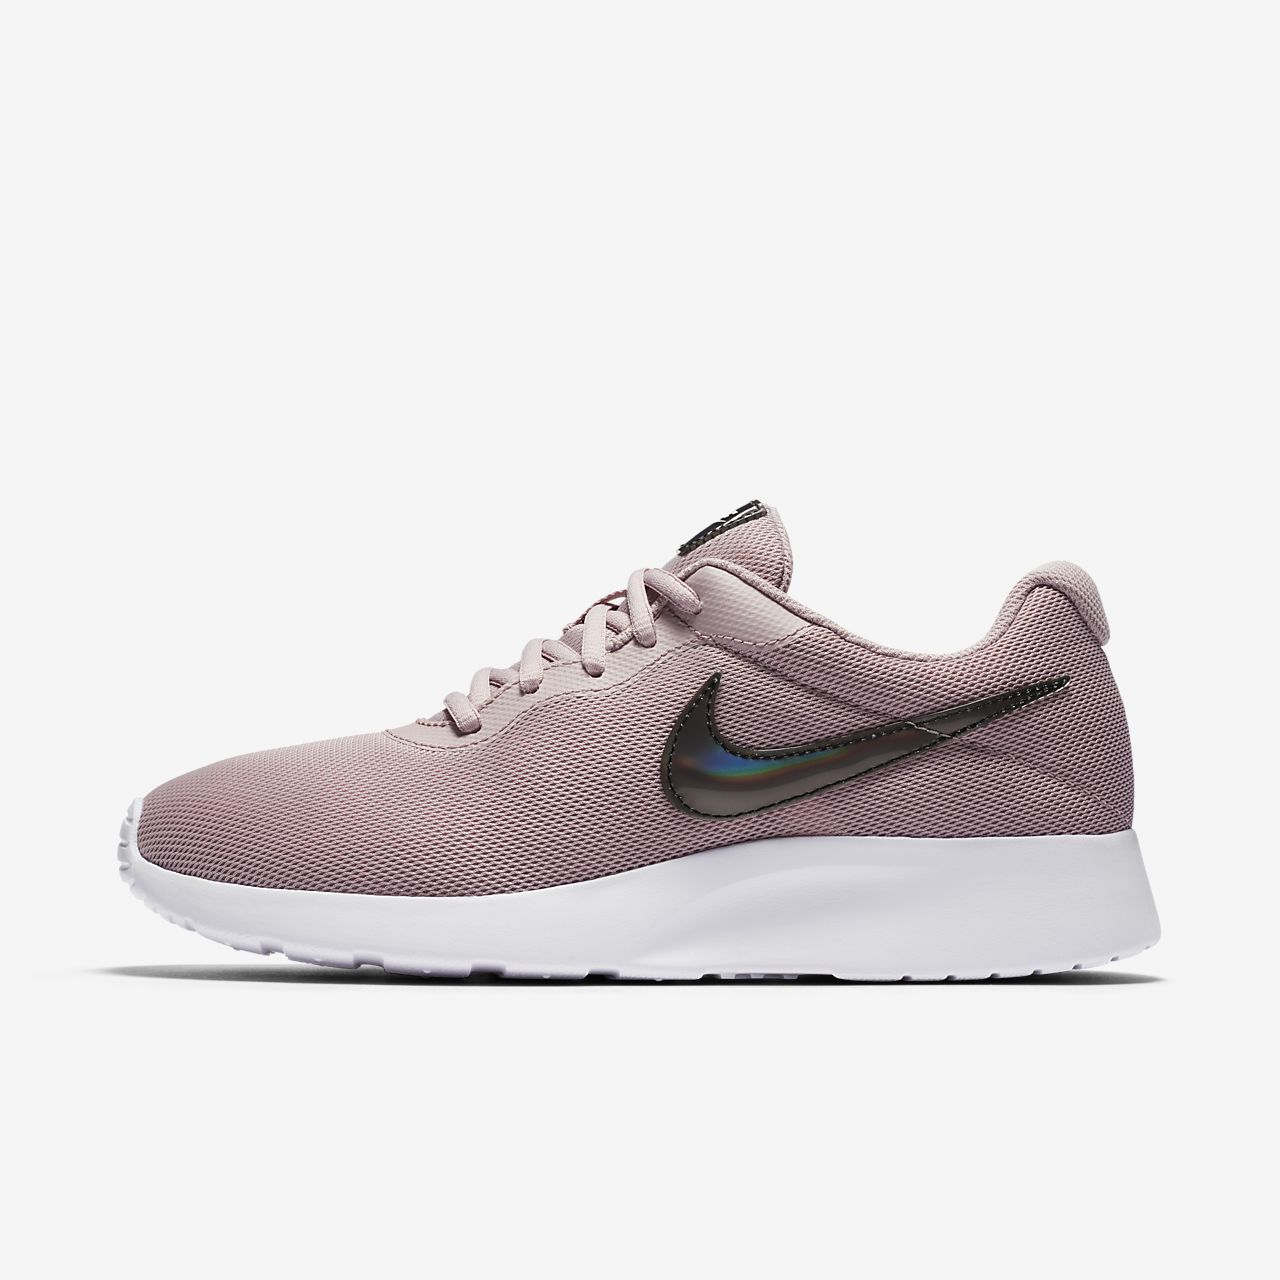 Low Resolution Nike Tanjun Women s Shoe Nike Tanjun Women s Shoe 56d3b3098